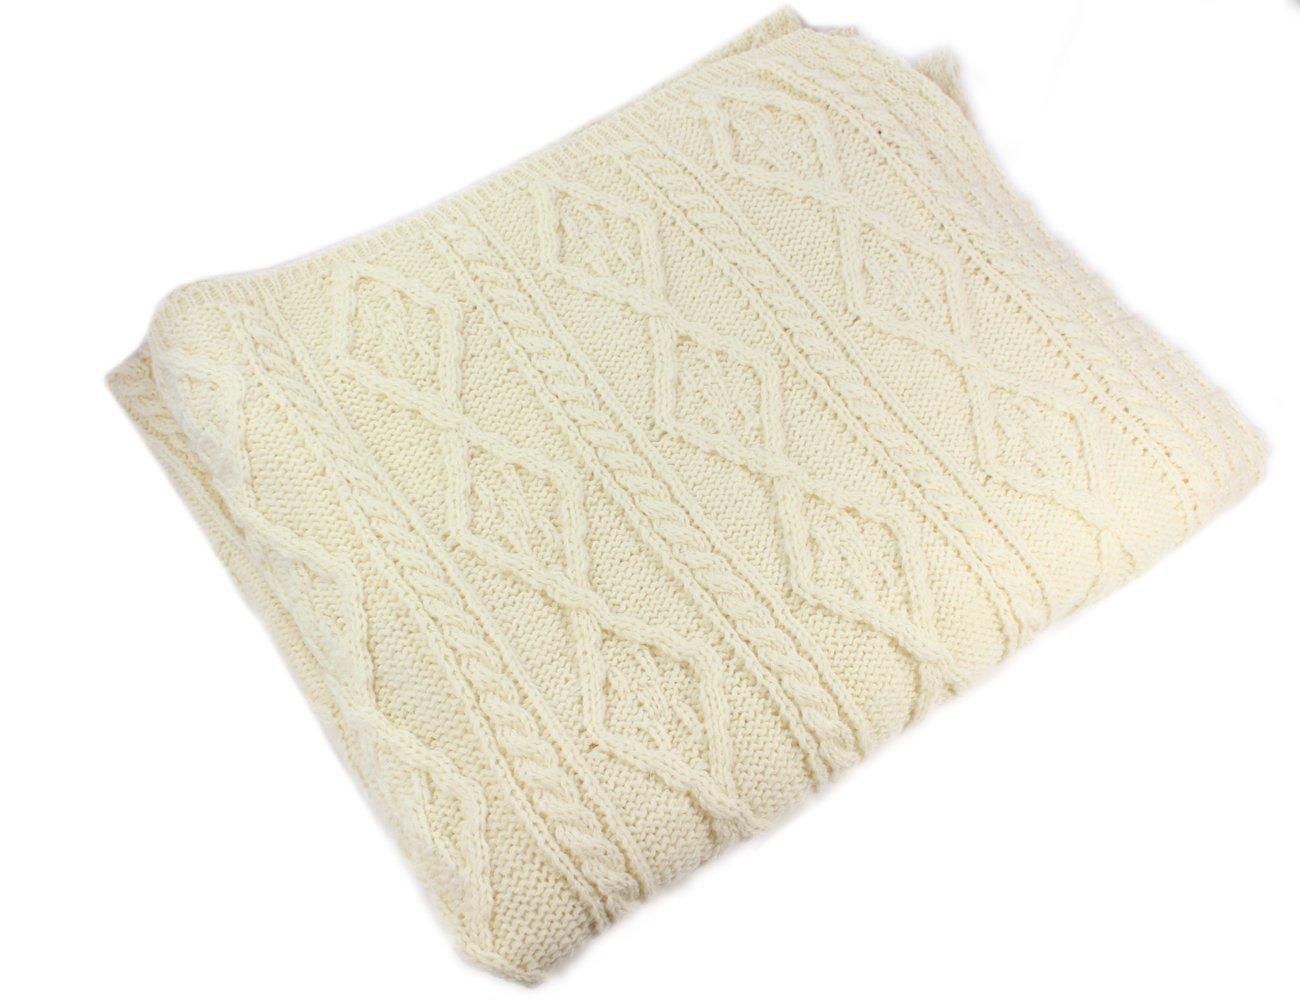 100% Irish Merino Wool Cream Wool Blanket by Carraig Donn